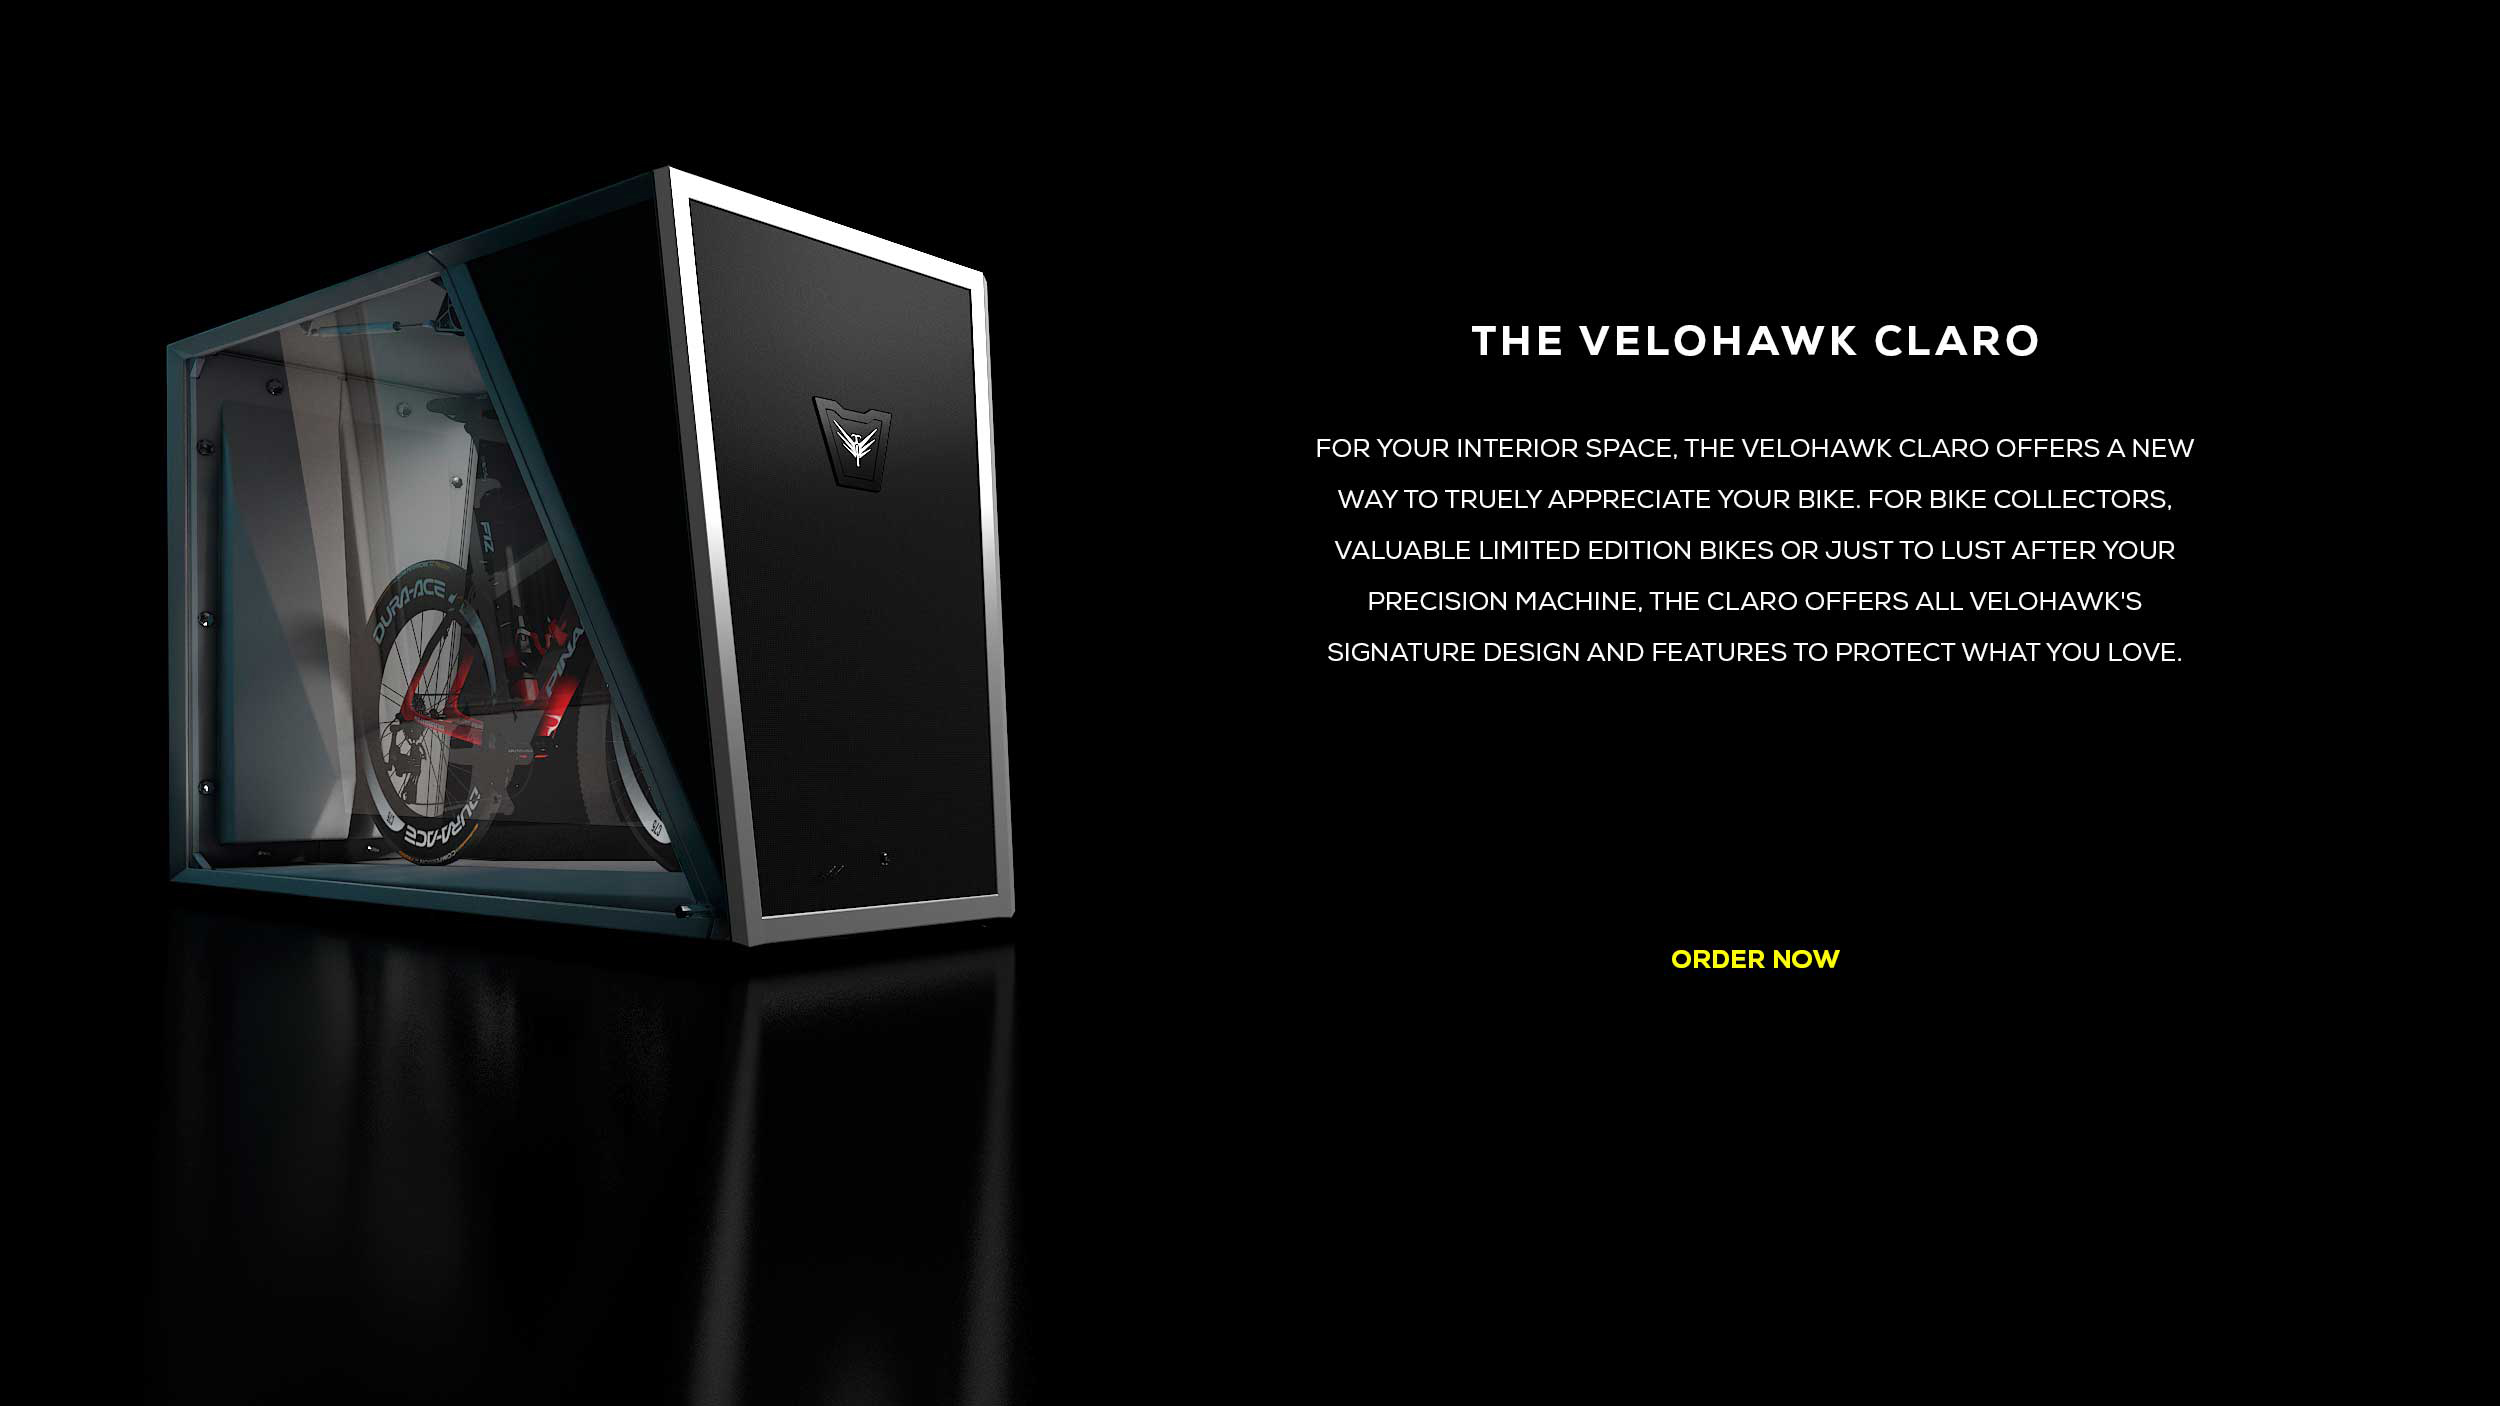 The Velohawk Claro Storage Pod